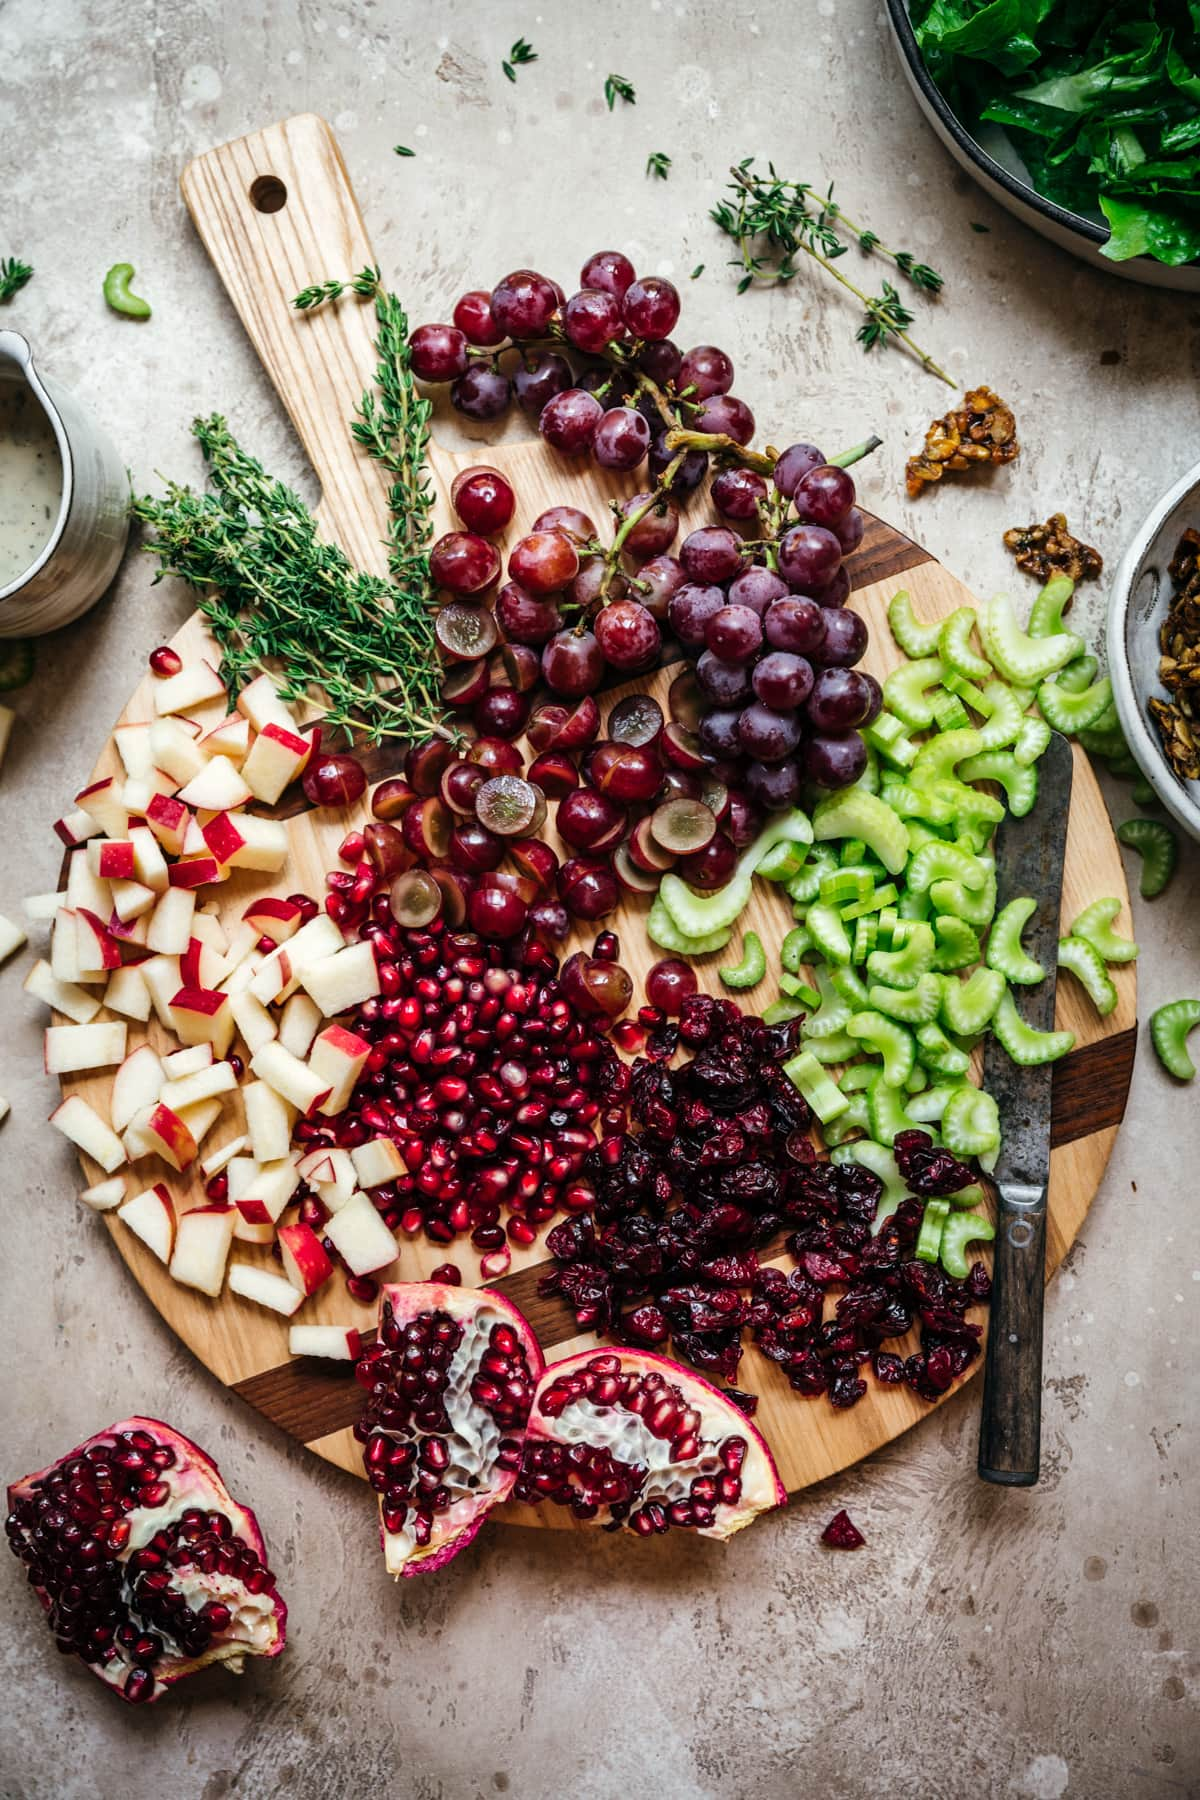 overhead view of ingredients for waldorf salad on a cutting board, including celery, grapes, dried cranberries, apples and pomegranate.